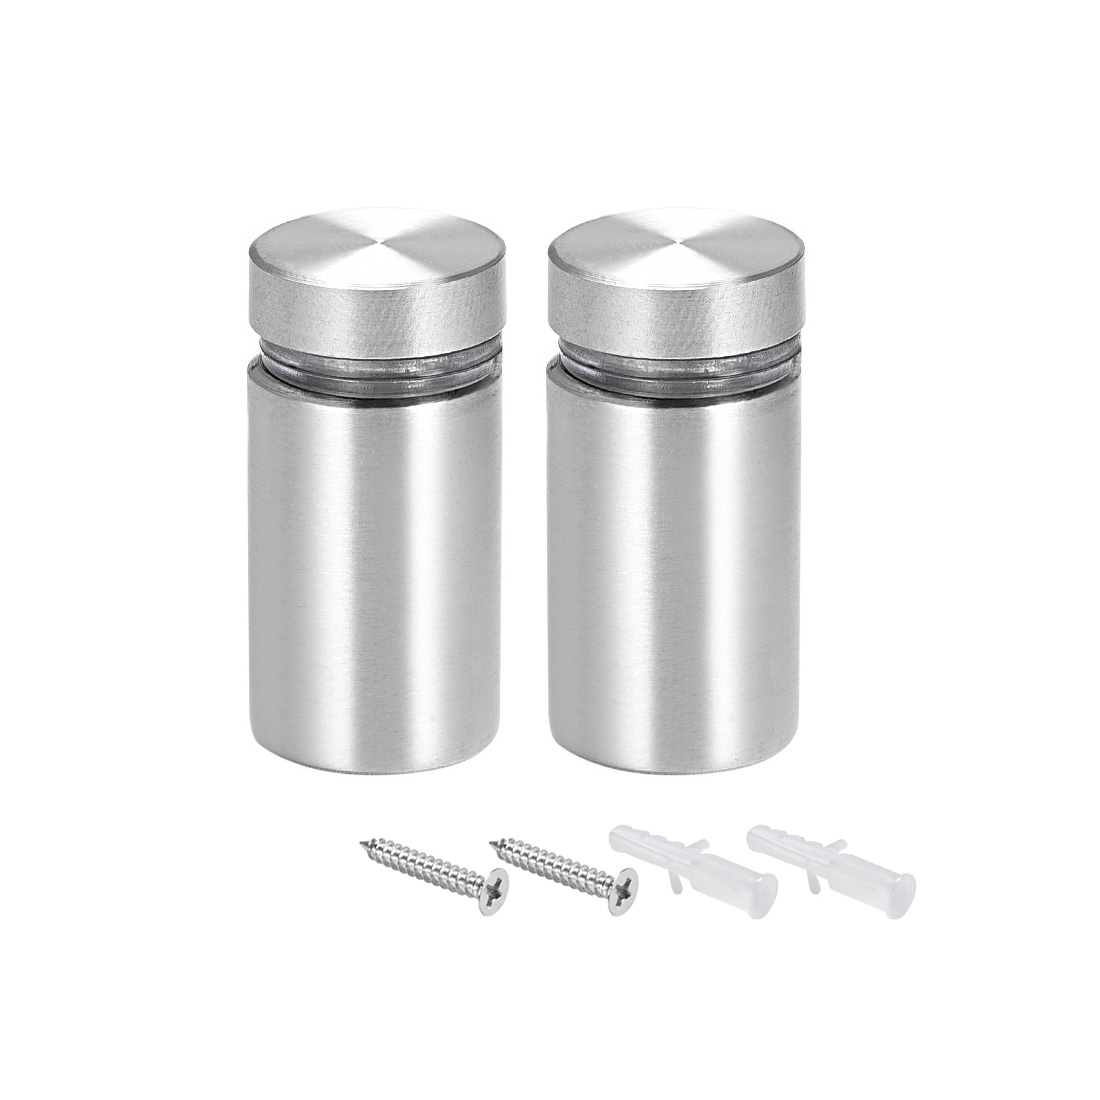 Glass Standoff Mount Solid Stainless Steel Wall Standoff Holder 16mmx33mm 2 Pcs